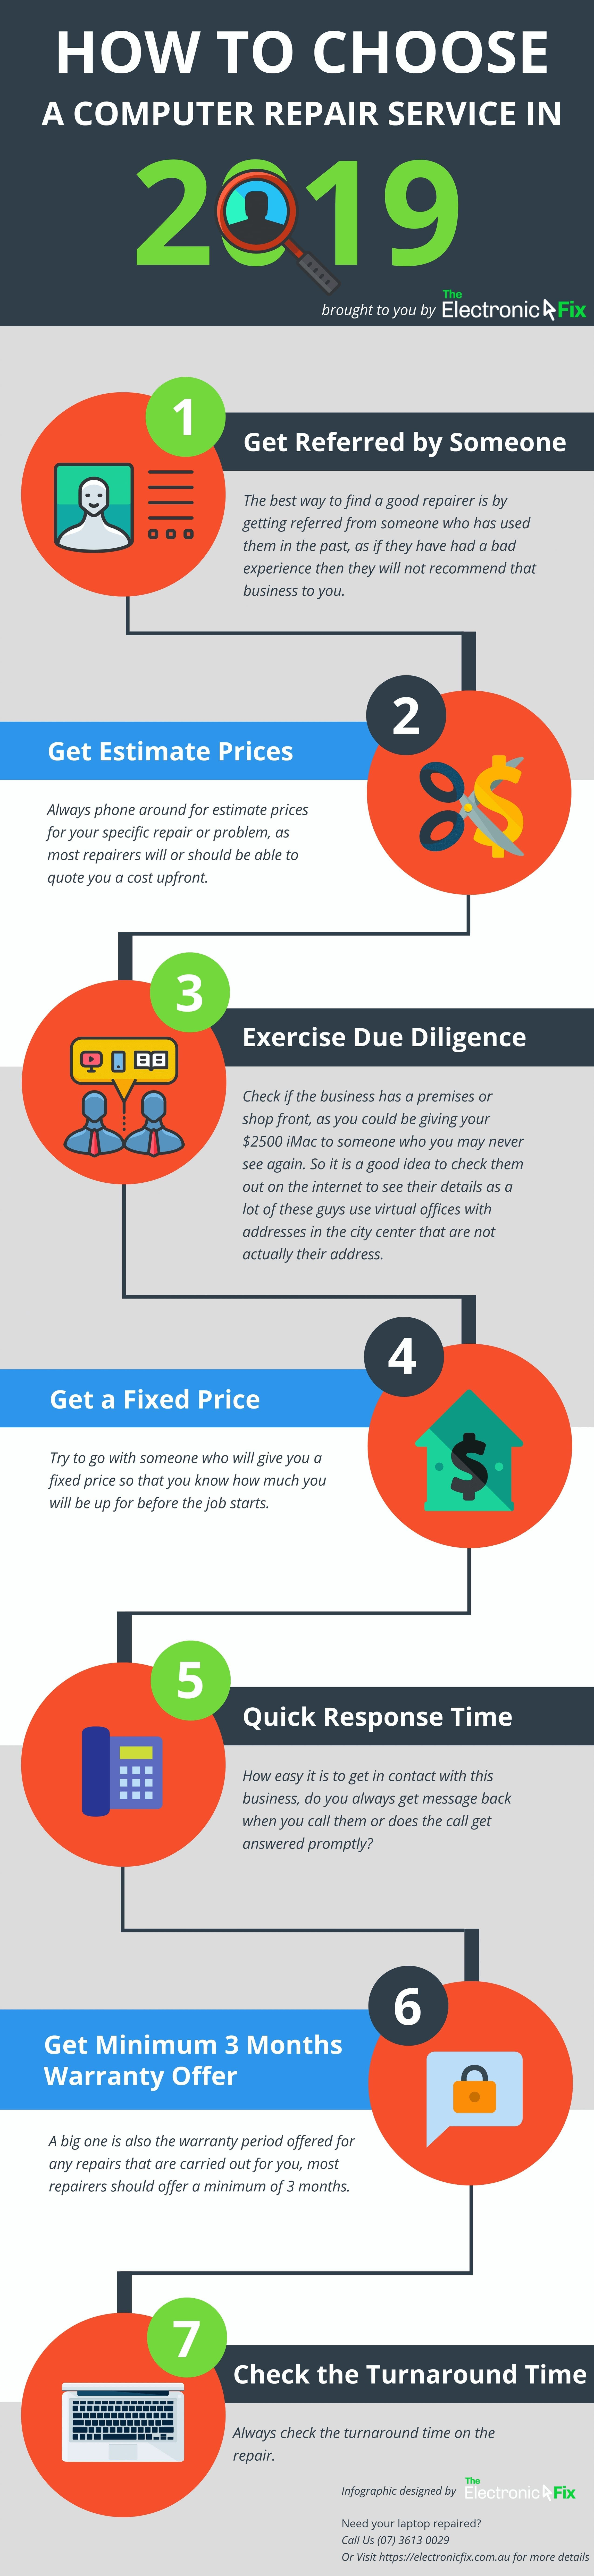 How to Choose a Computer Repair Service - Infographic